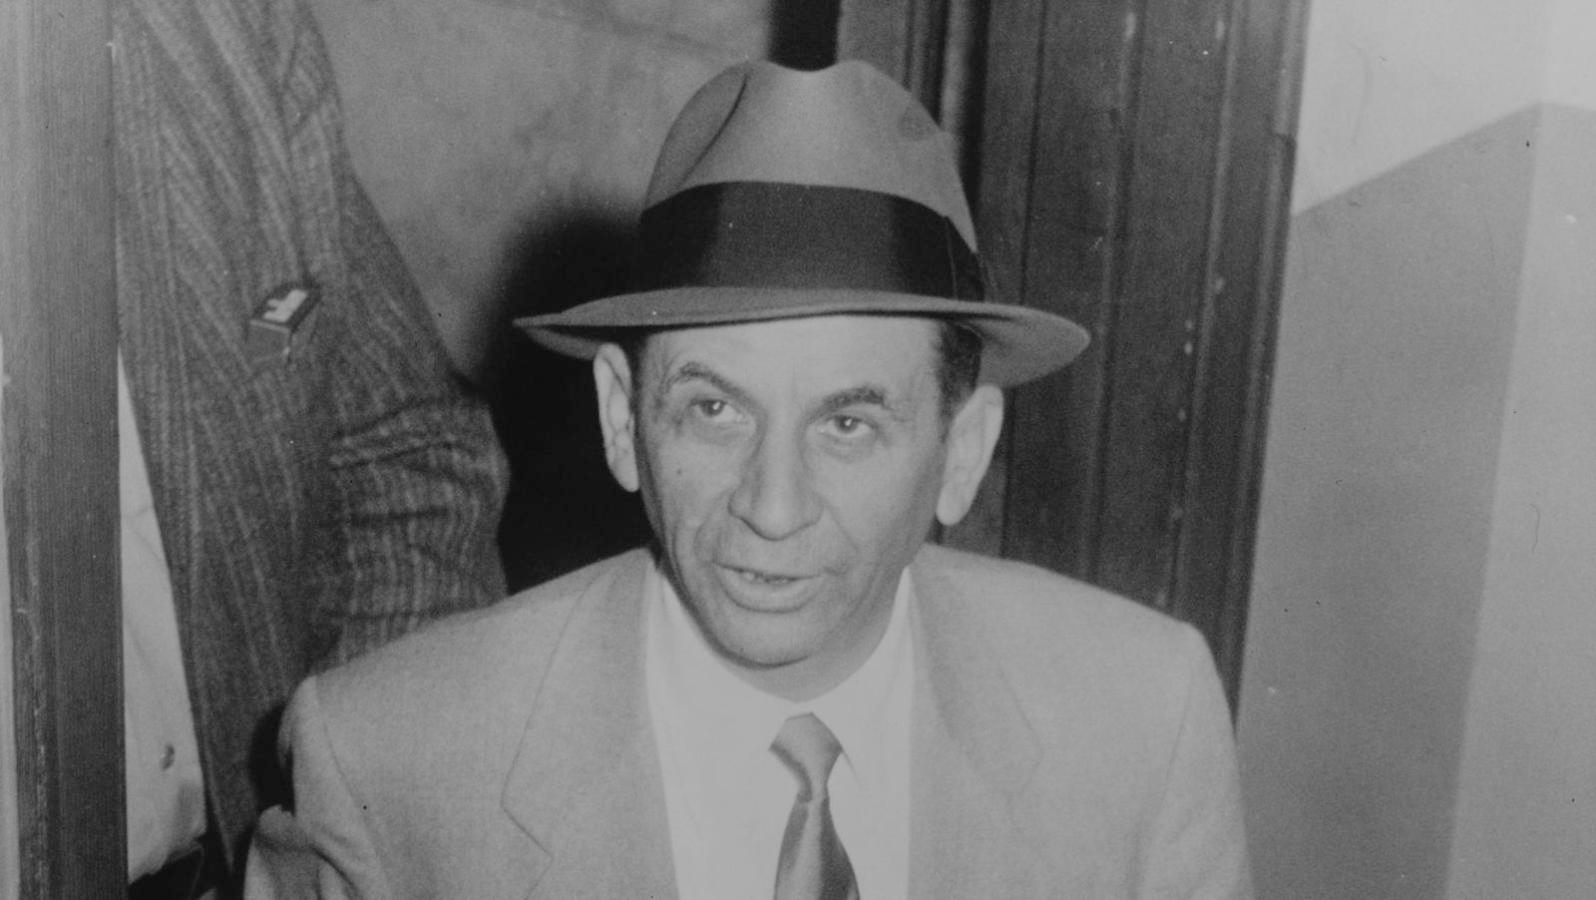 New York's 4 Most Famous Jewish Gangsters | My Jewish Learning